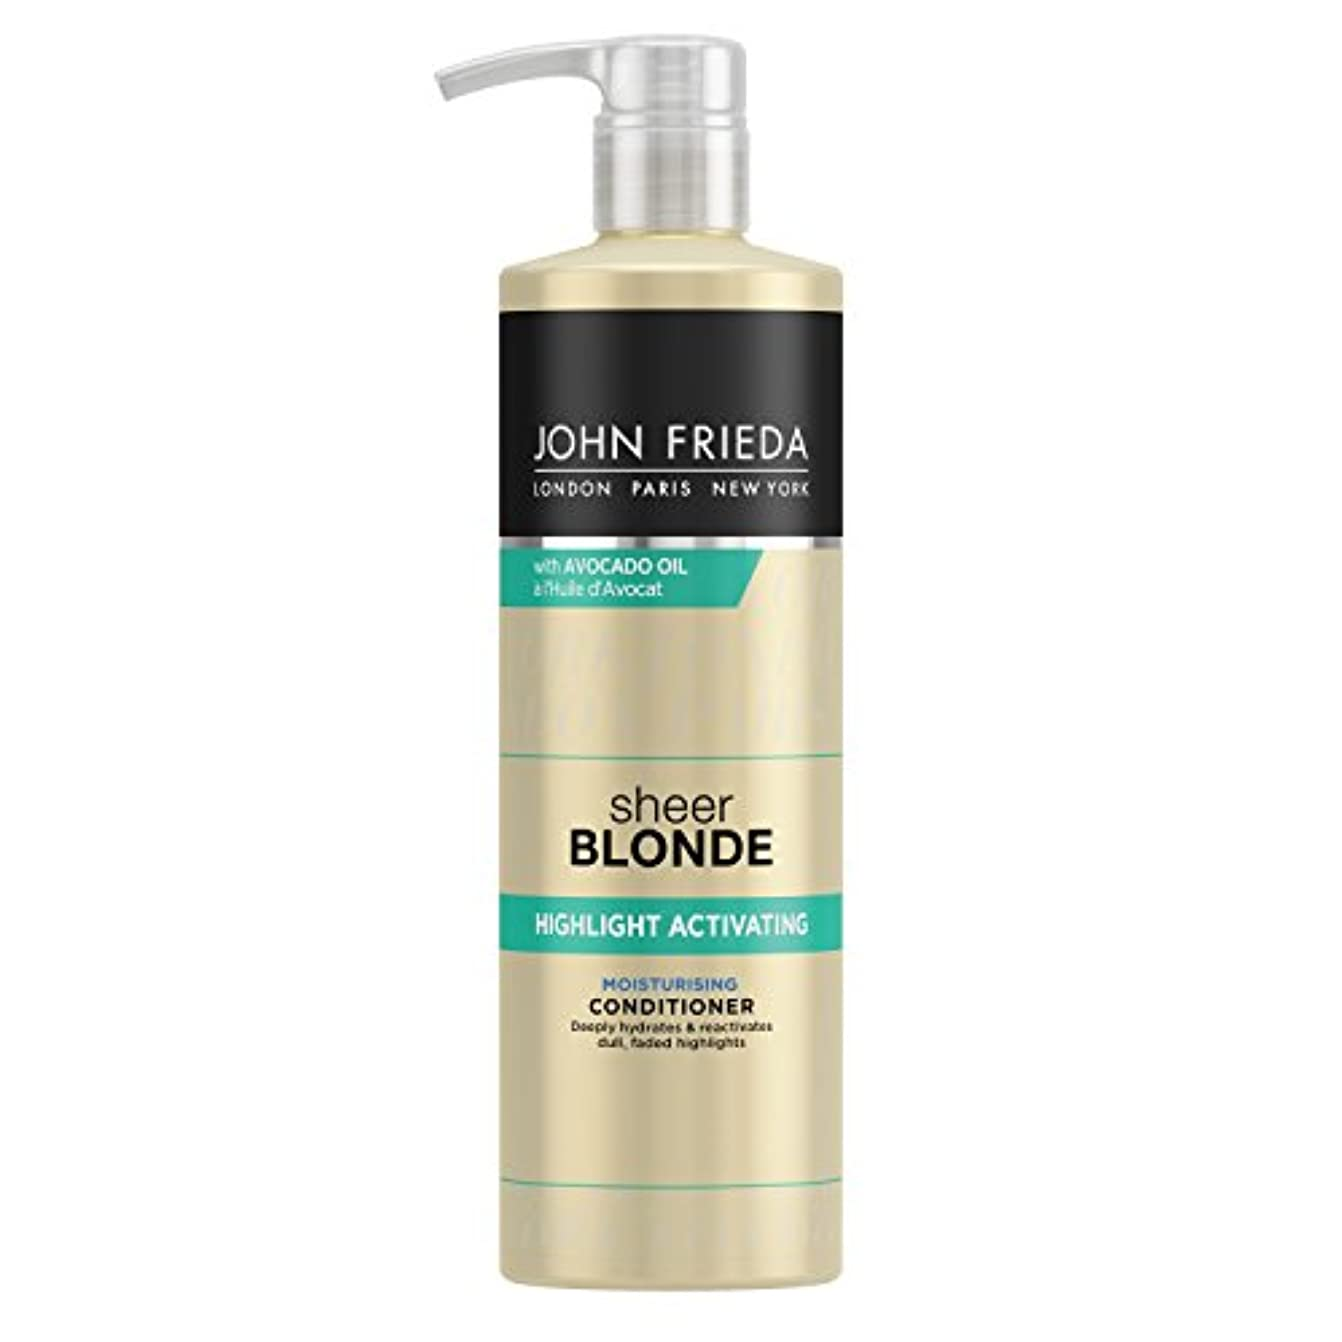 別れるバーターインレイJohn Frieda Sheer Blonde Highlight Activating Moisturising Conditioner for Lighter Shades 500ml